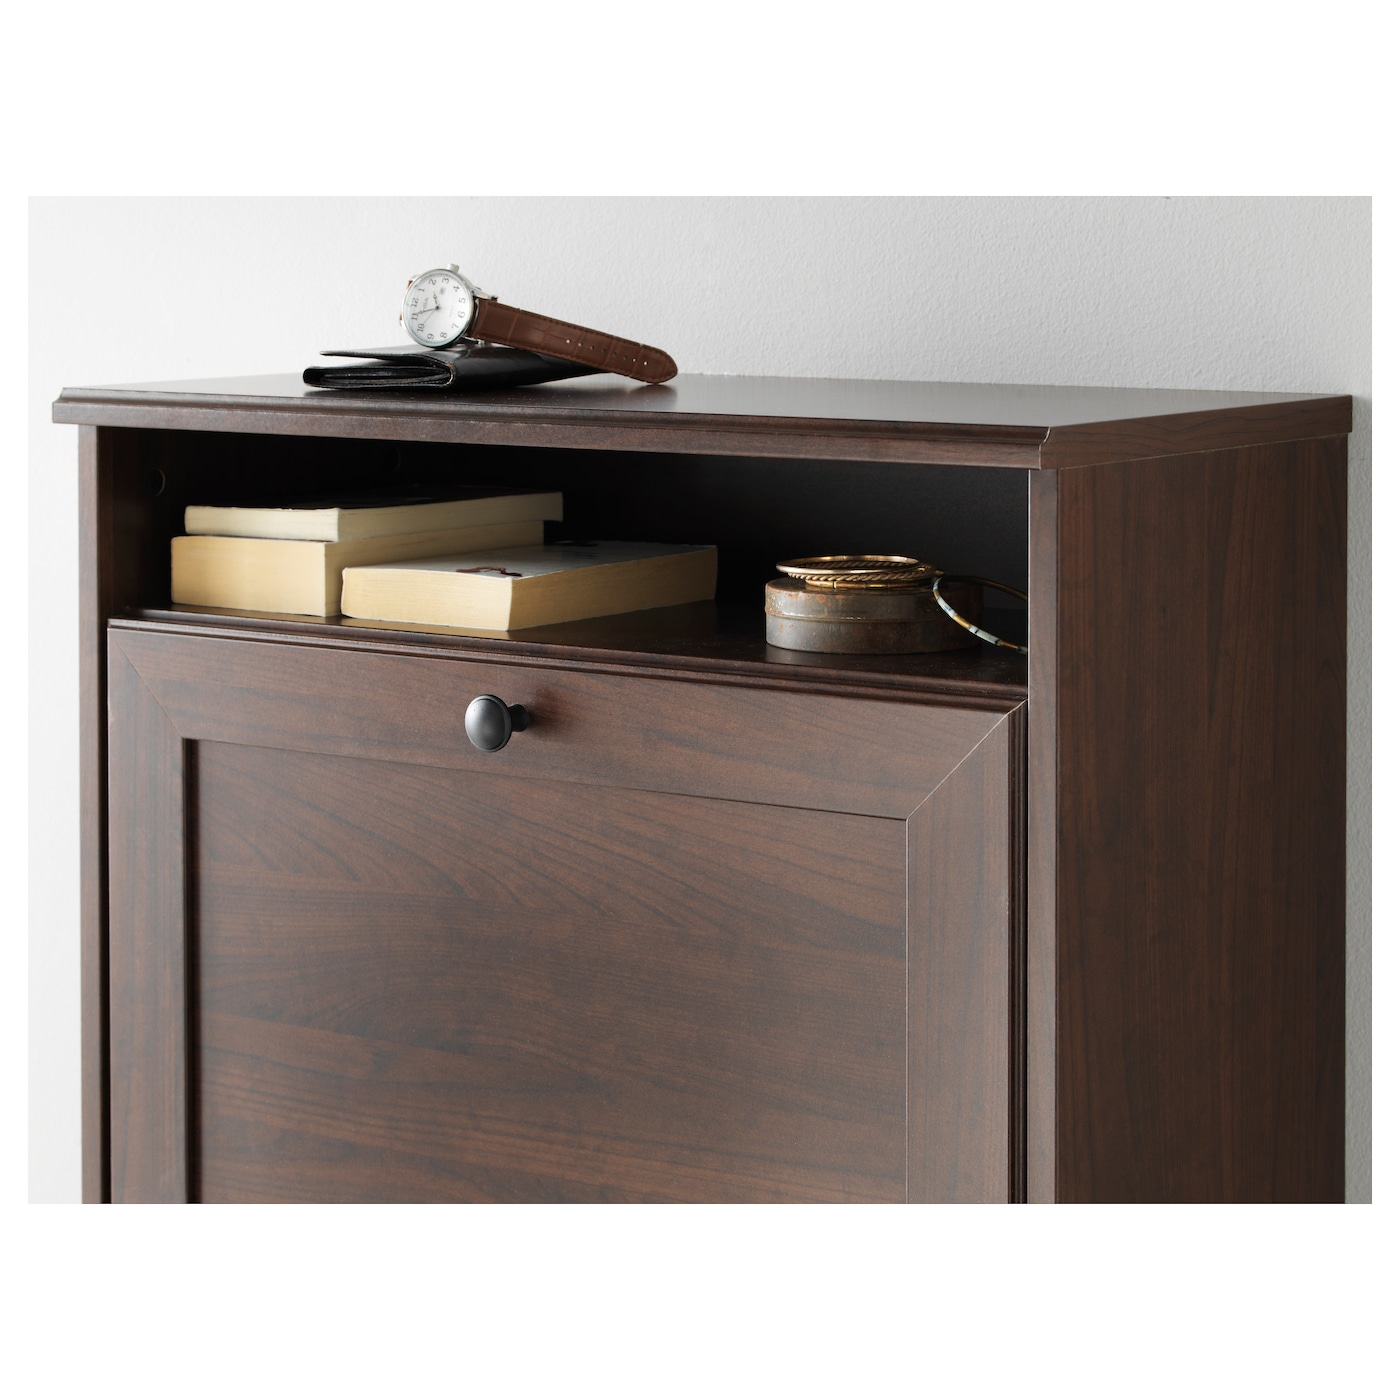 brusali shoe cabinet with 3 compartments brown 61 x 130 cm ikea. Black Bedroom Furniture Sets. Home Design Ideas